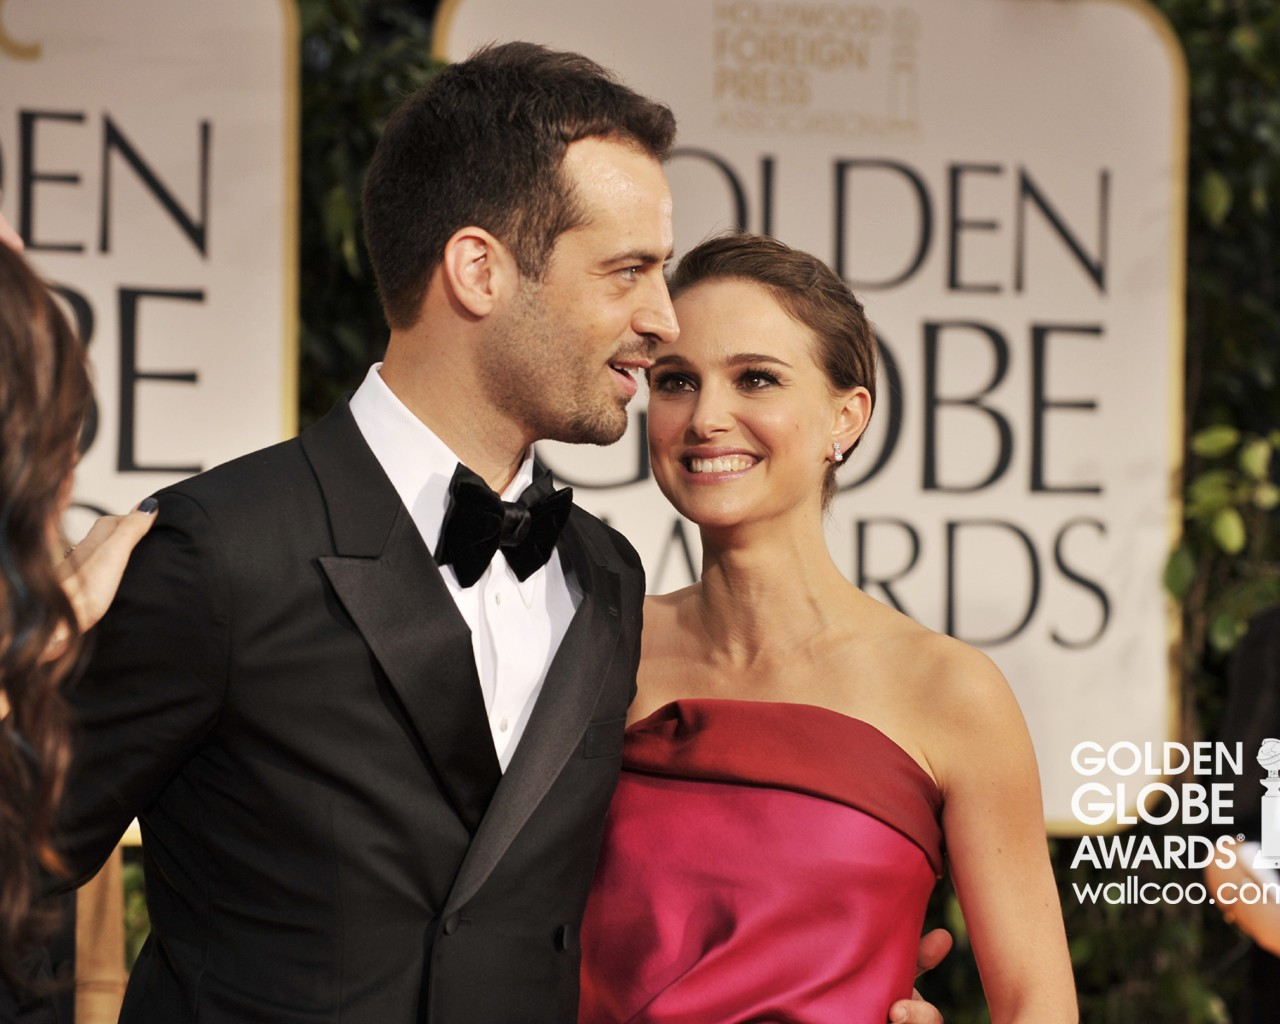 Natalie & #; Portman couple 31256